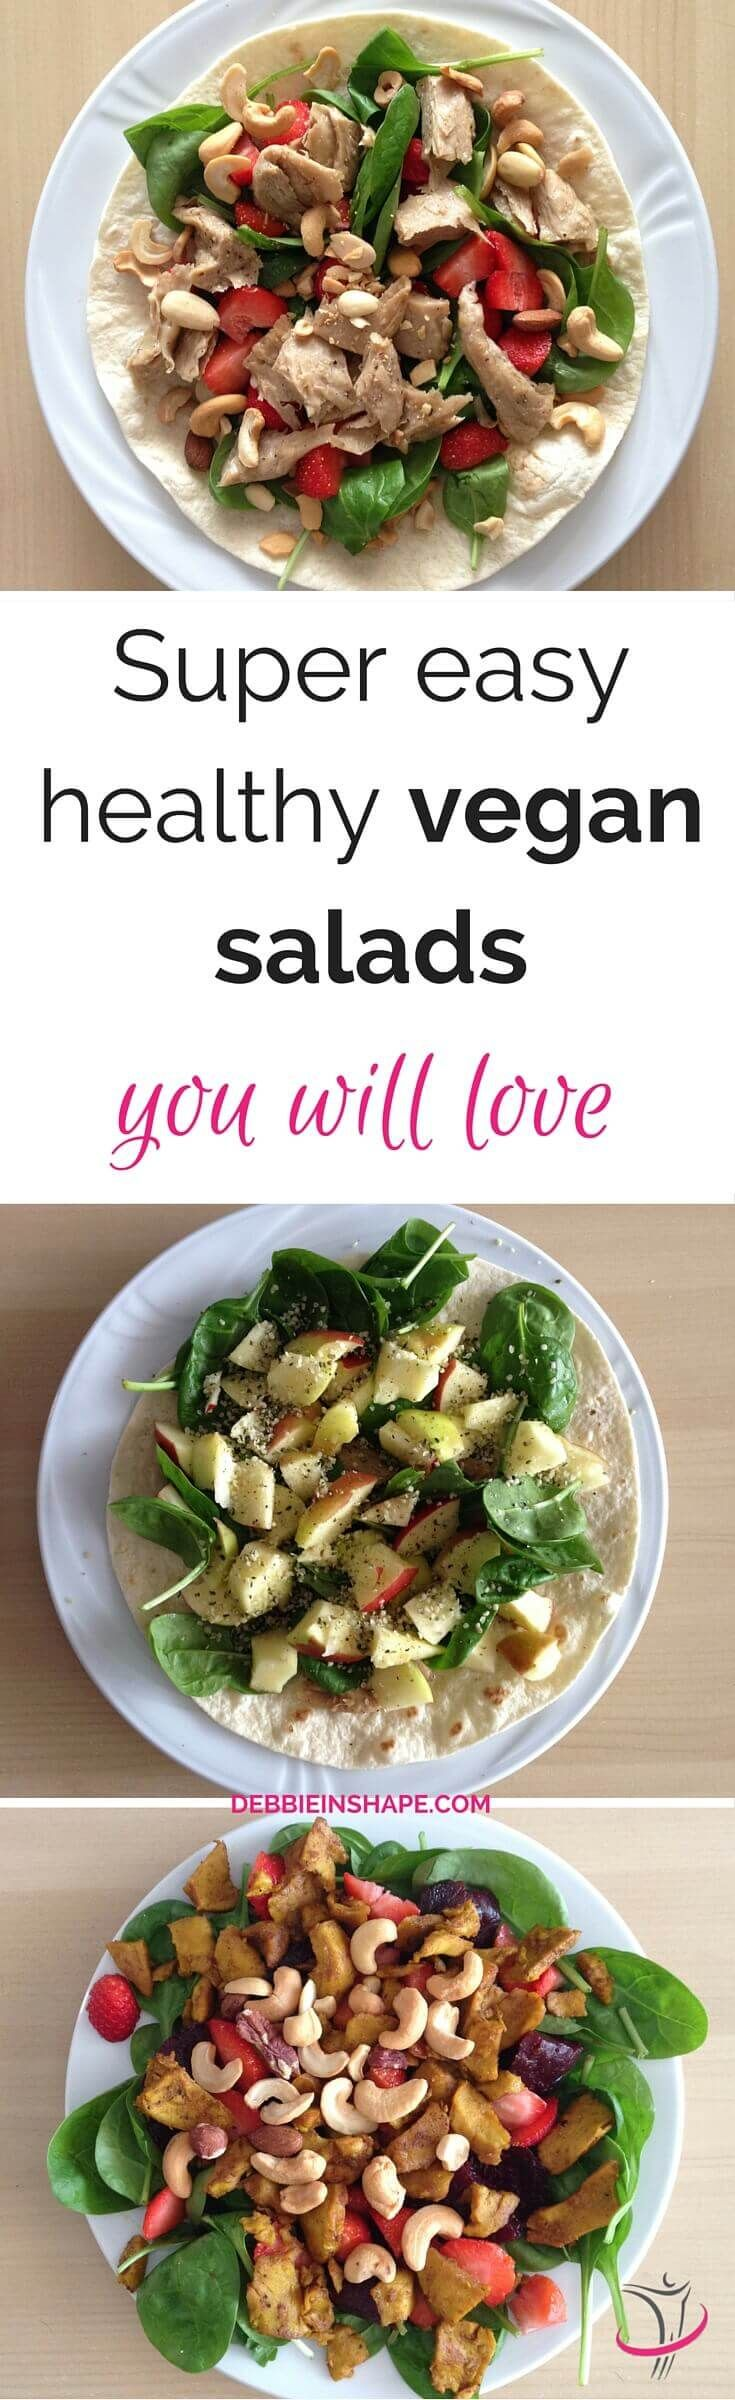 Watch 3 Easy Spring Salads You Can Make Tonight video